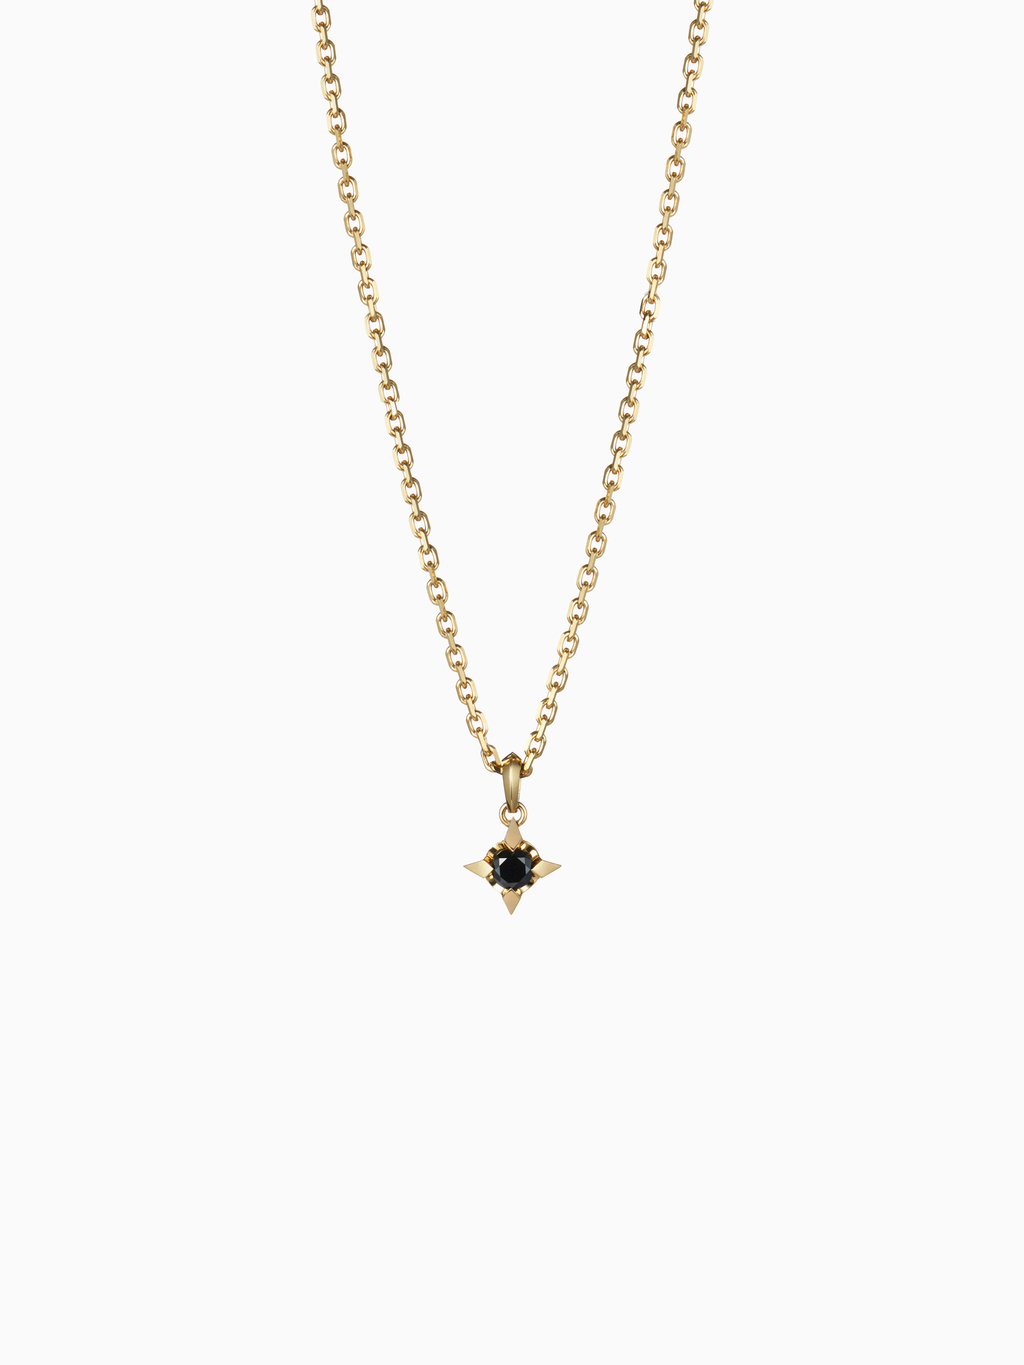 Anteres 05 / Pendant / Diamond / Gold